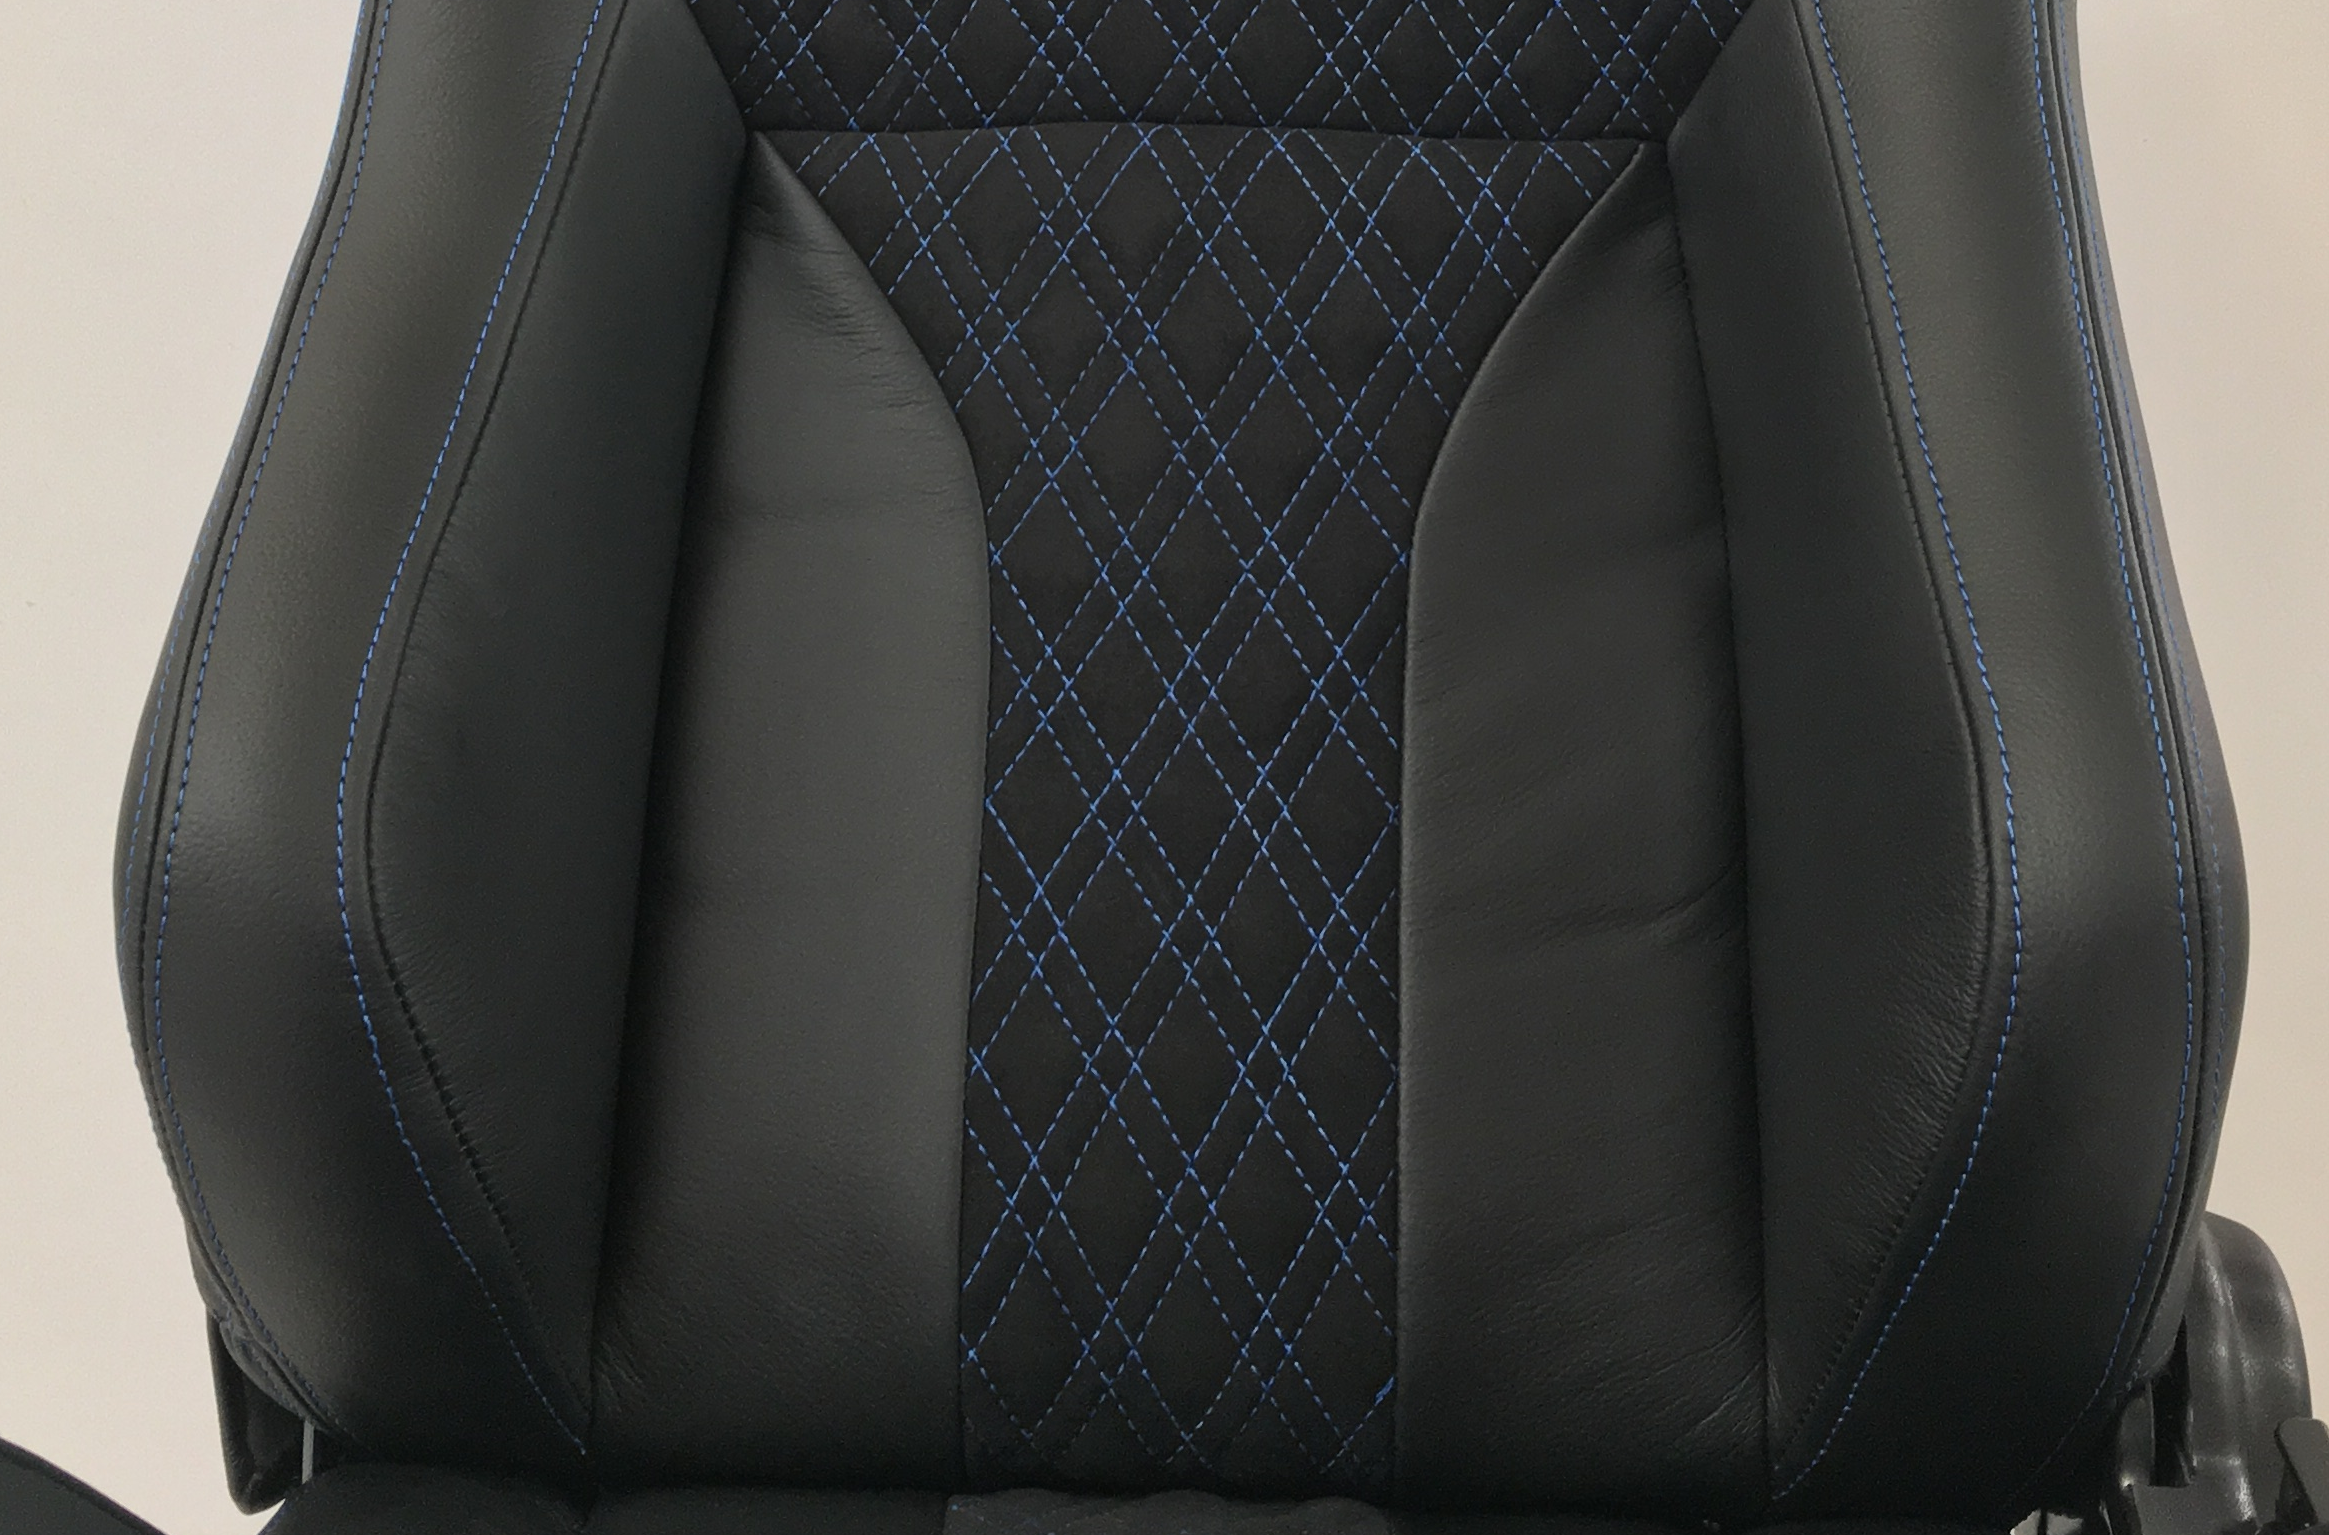 Corbeau RRS Reclining Bucket Seat in Black with Blue Double Diamond Stitching - Custom Elite Upgrade Option